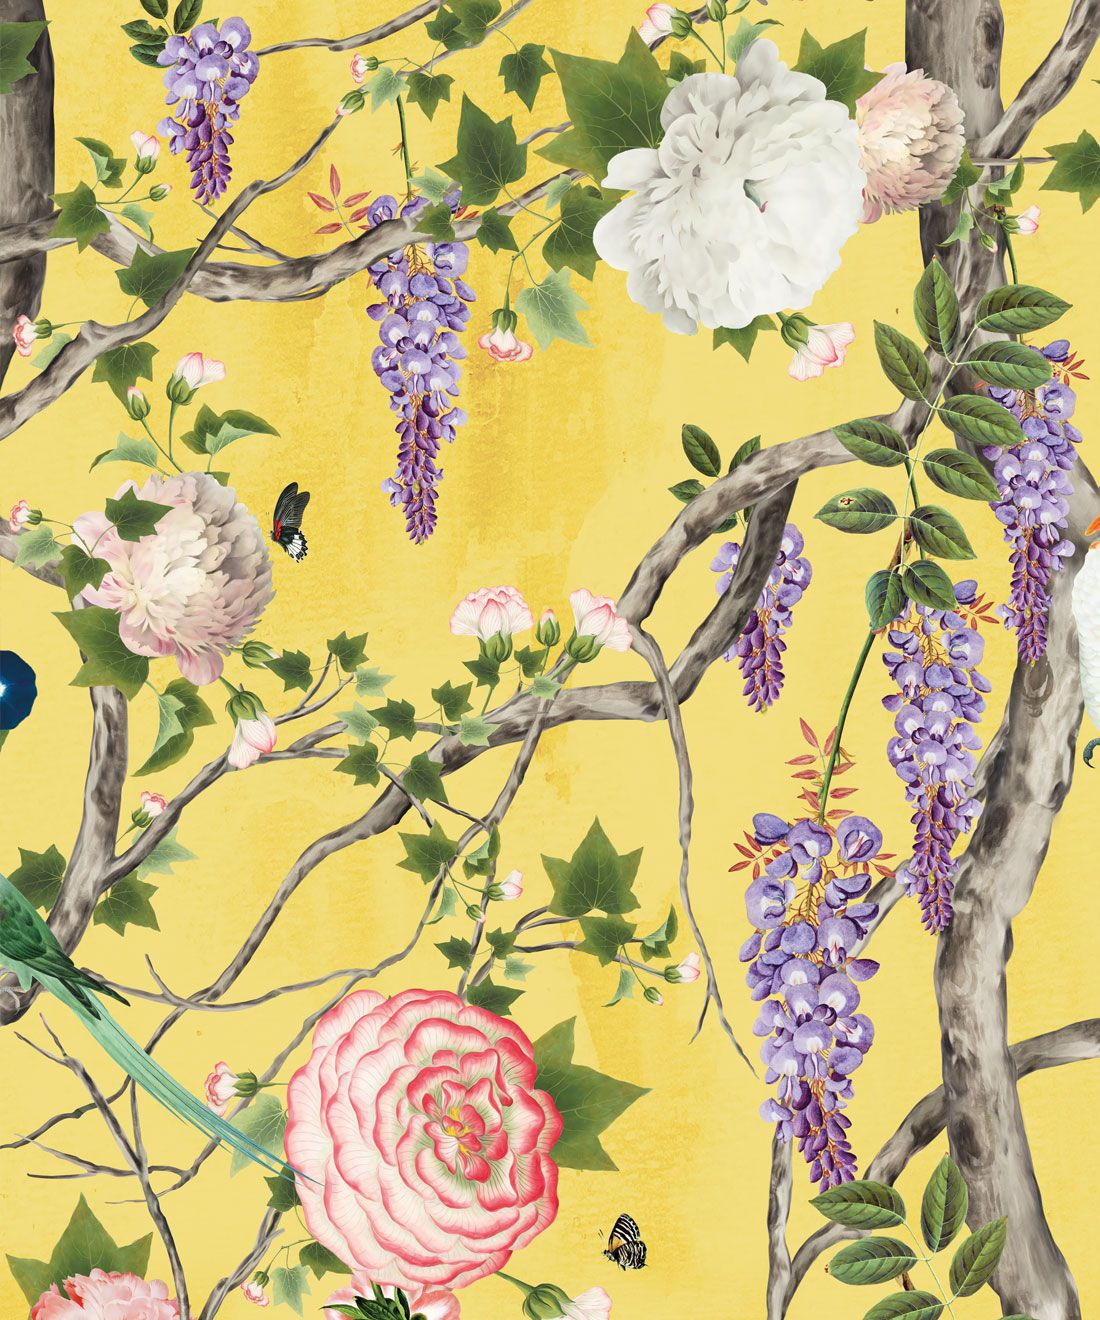 Empress Wallpaper • Romantic Wallpaper • Floral Wallpaper • Chinoiserie Wallpaper • Yellow color wallpaper swatch • Honey